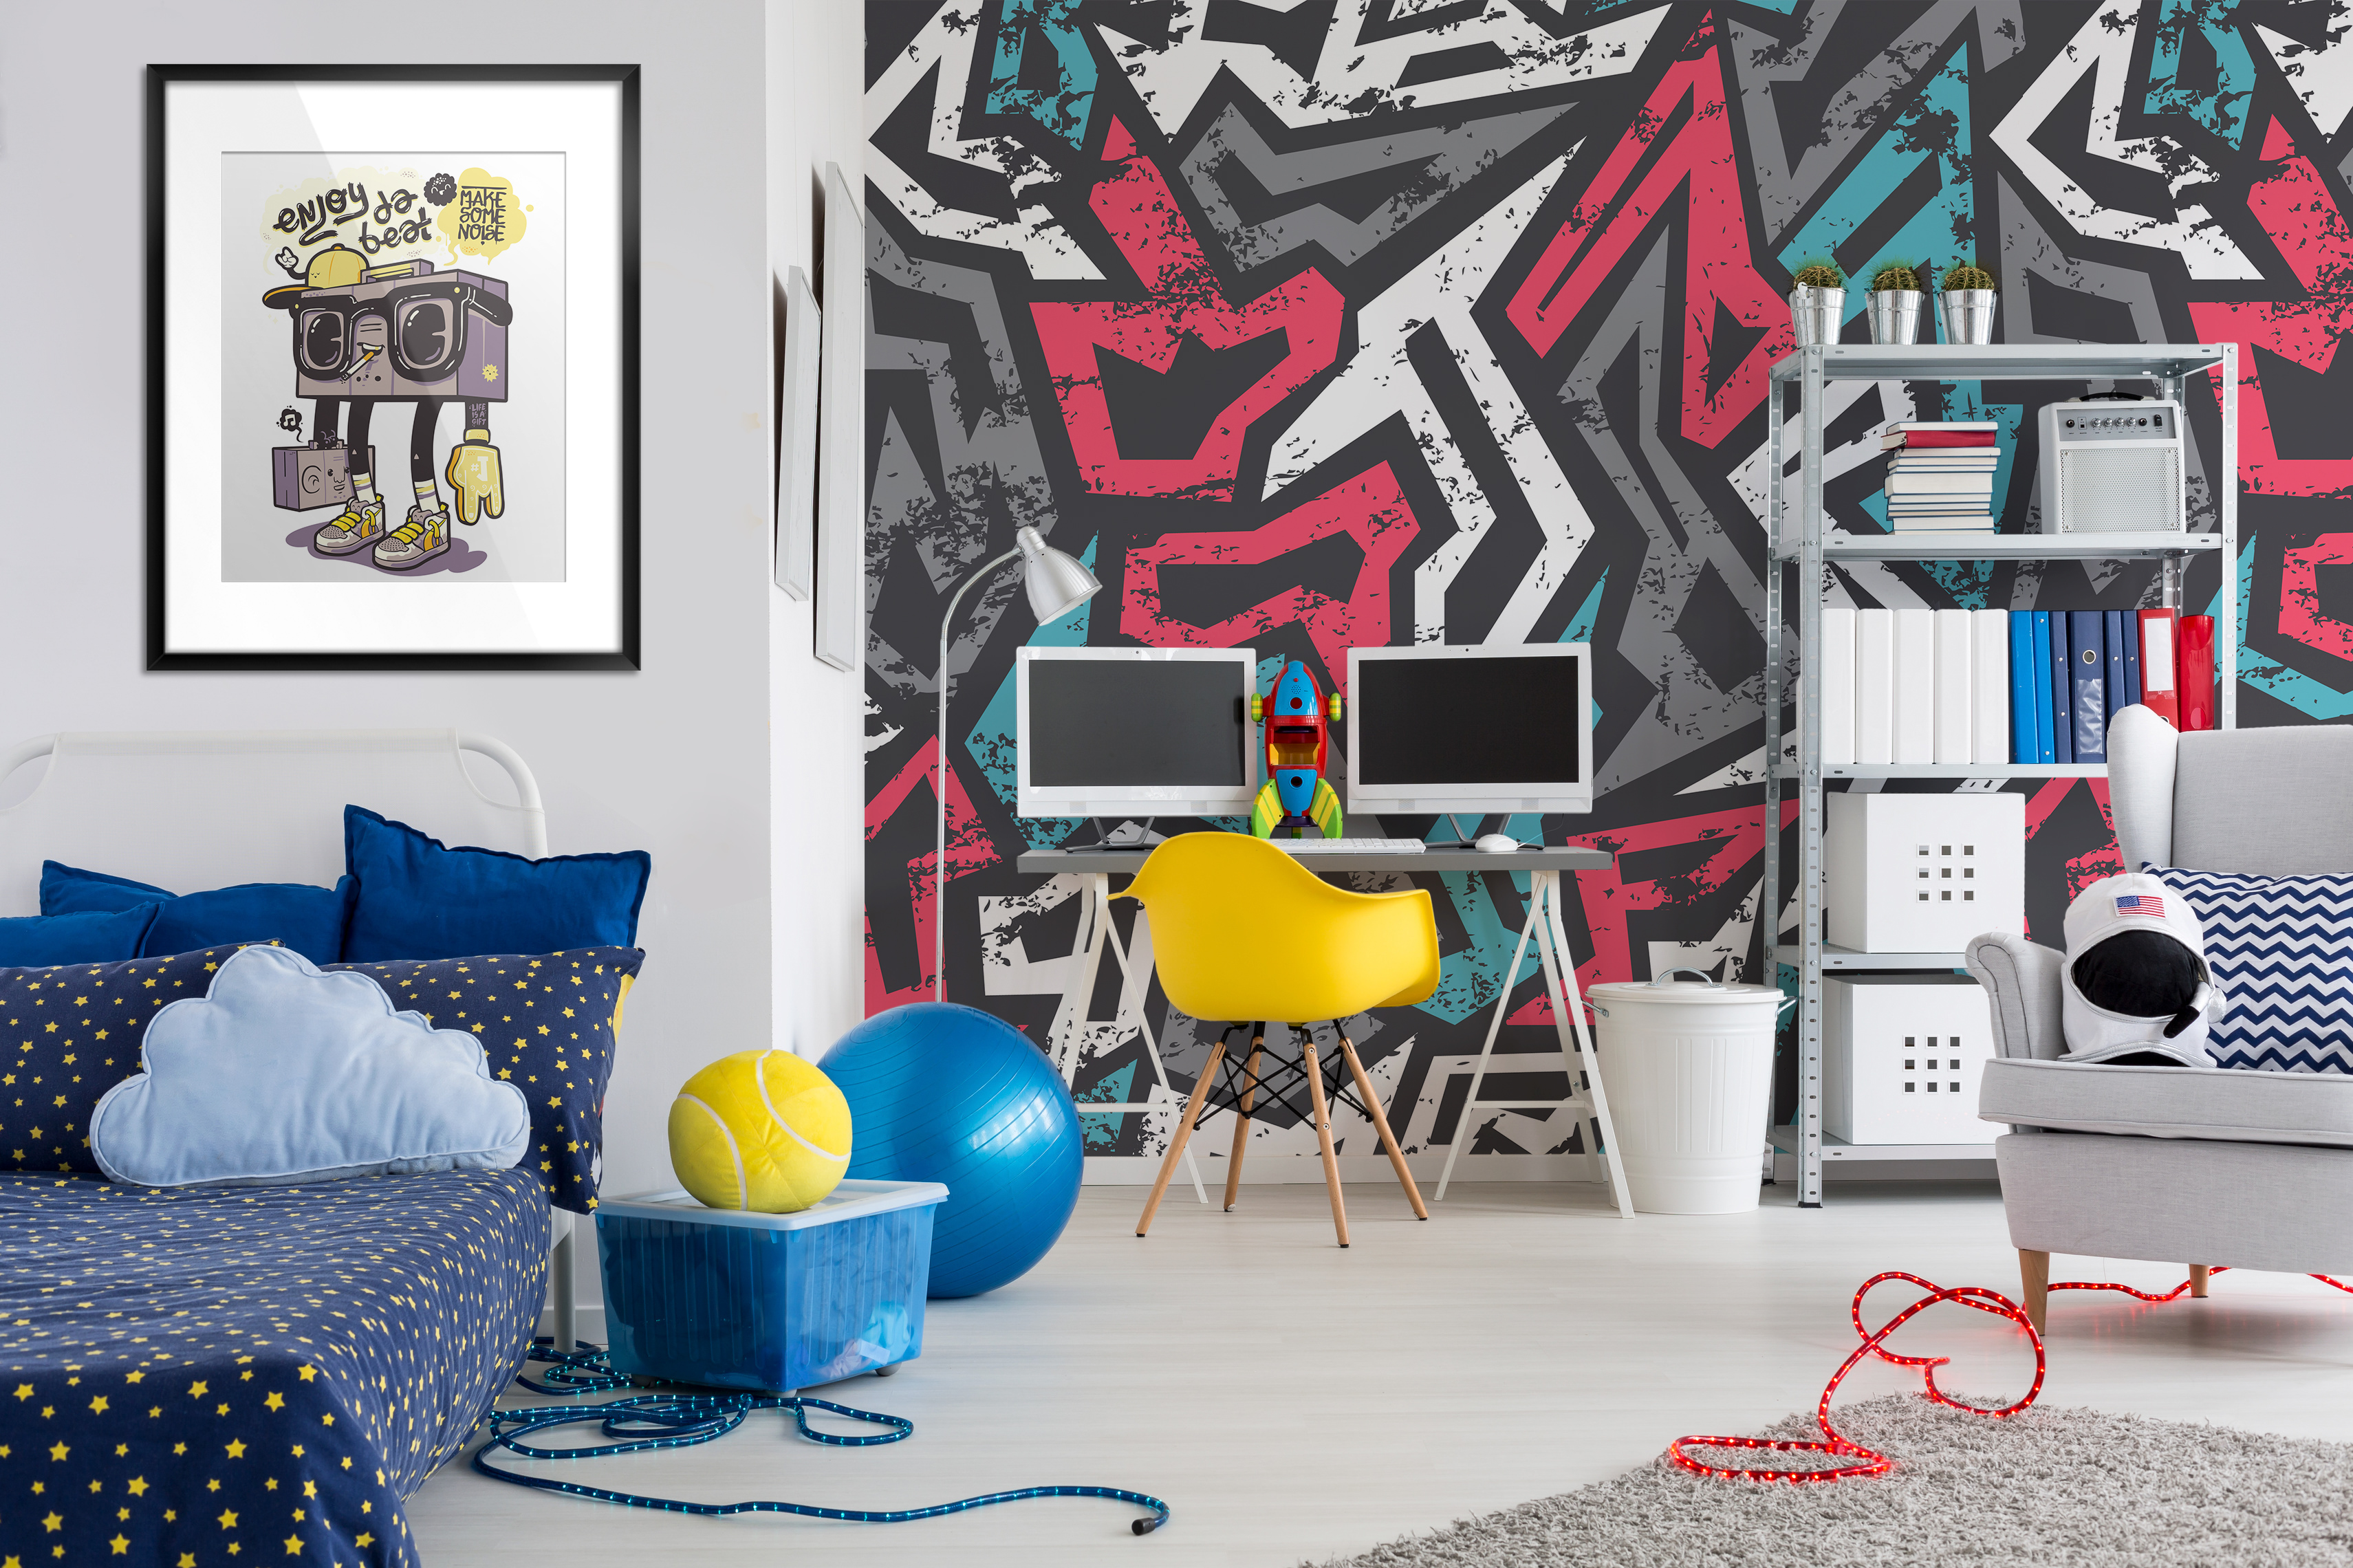 Cosmic Graffiti Contemporary Kids room Wall Murals Posters